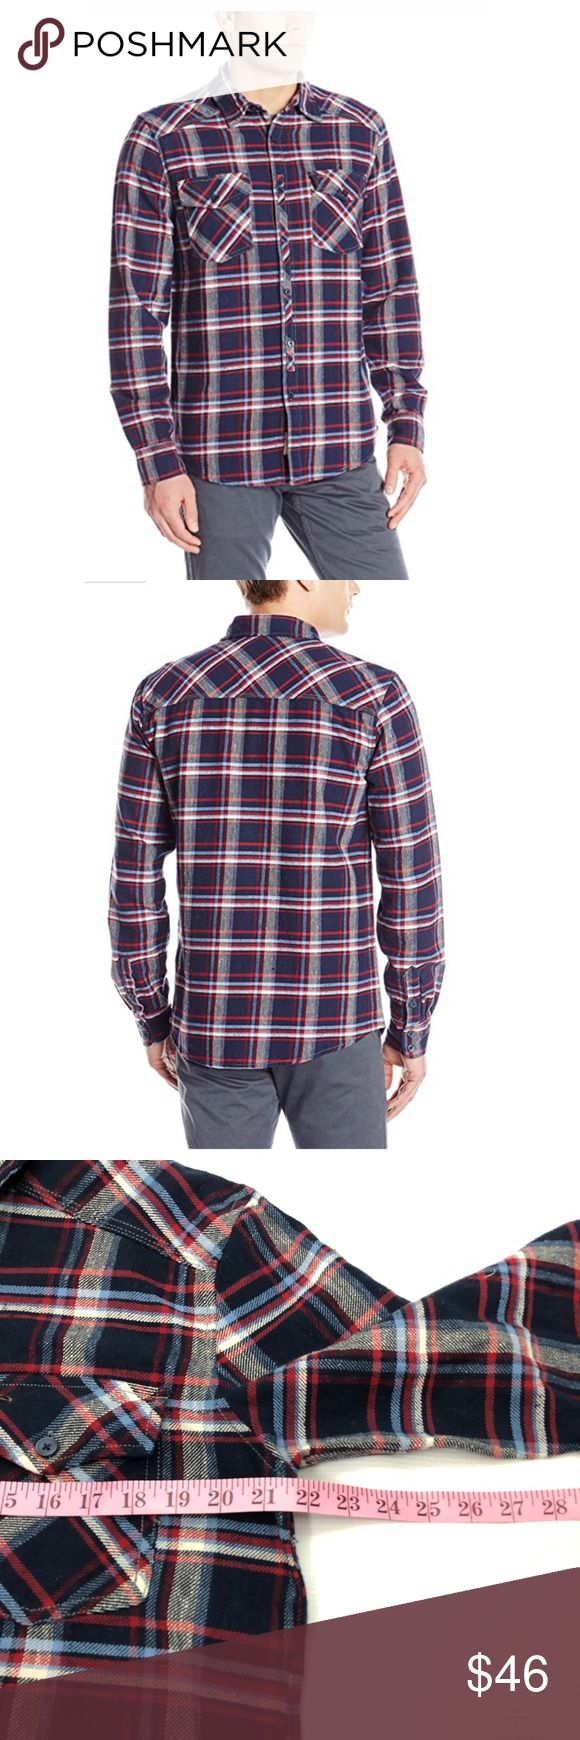 Sliver jeans men's plaid button down shirt New button up men's plaid flannel thick material great for the cold days tag has been marked to prevent store return Silver Jeans Tops Button Down Shirts